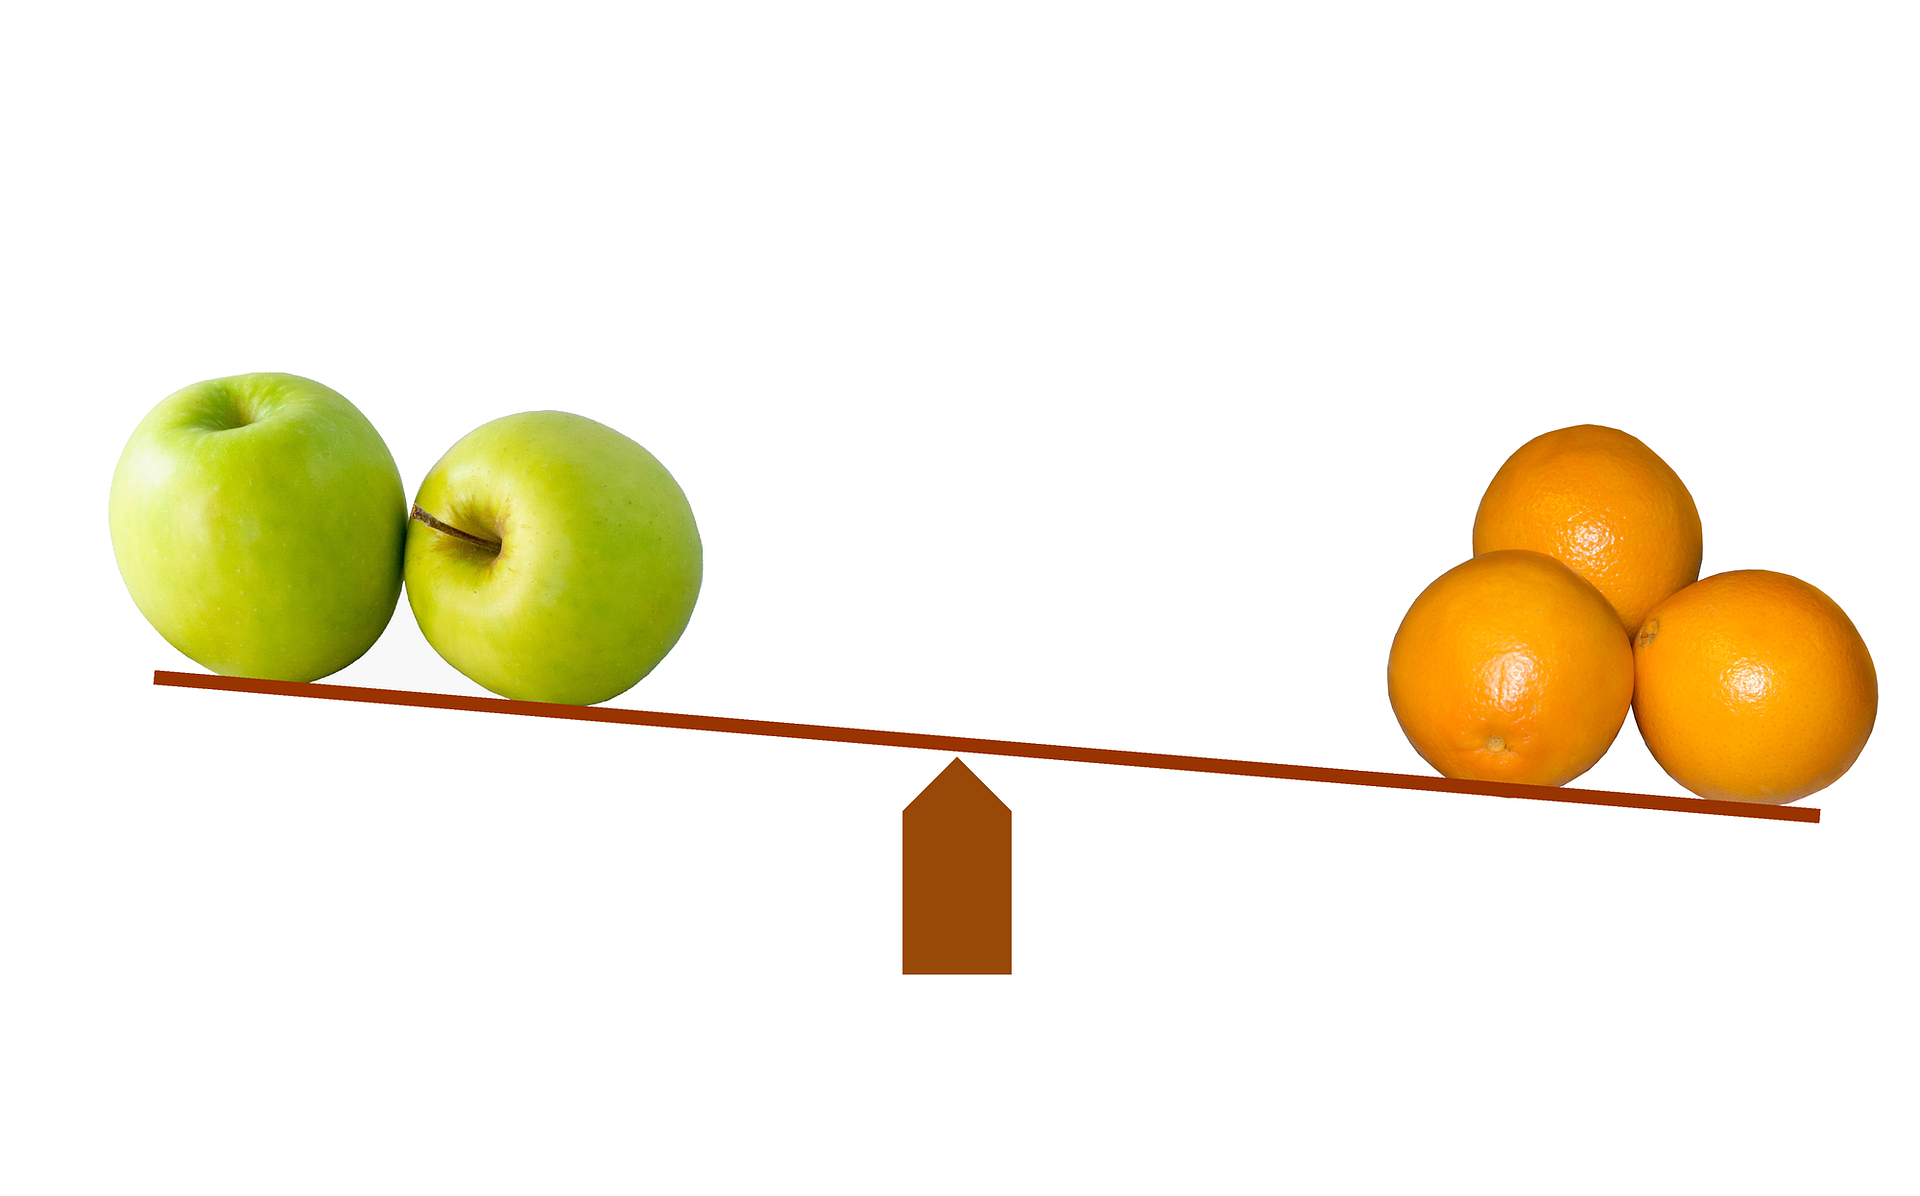 Apples versus oranges on a scale